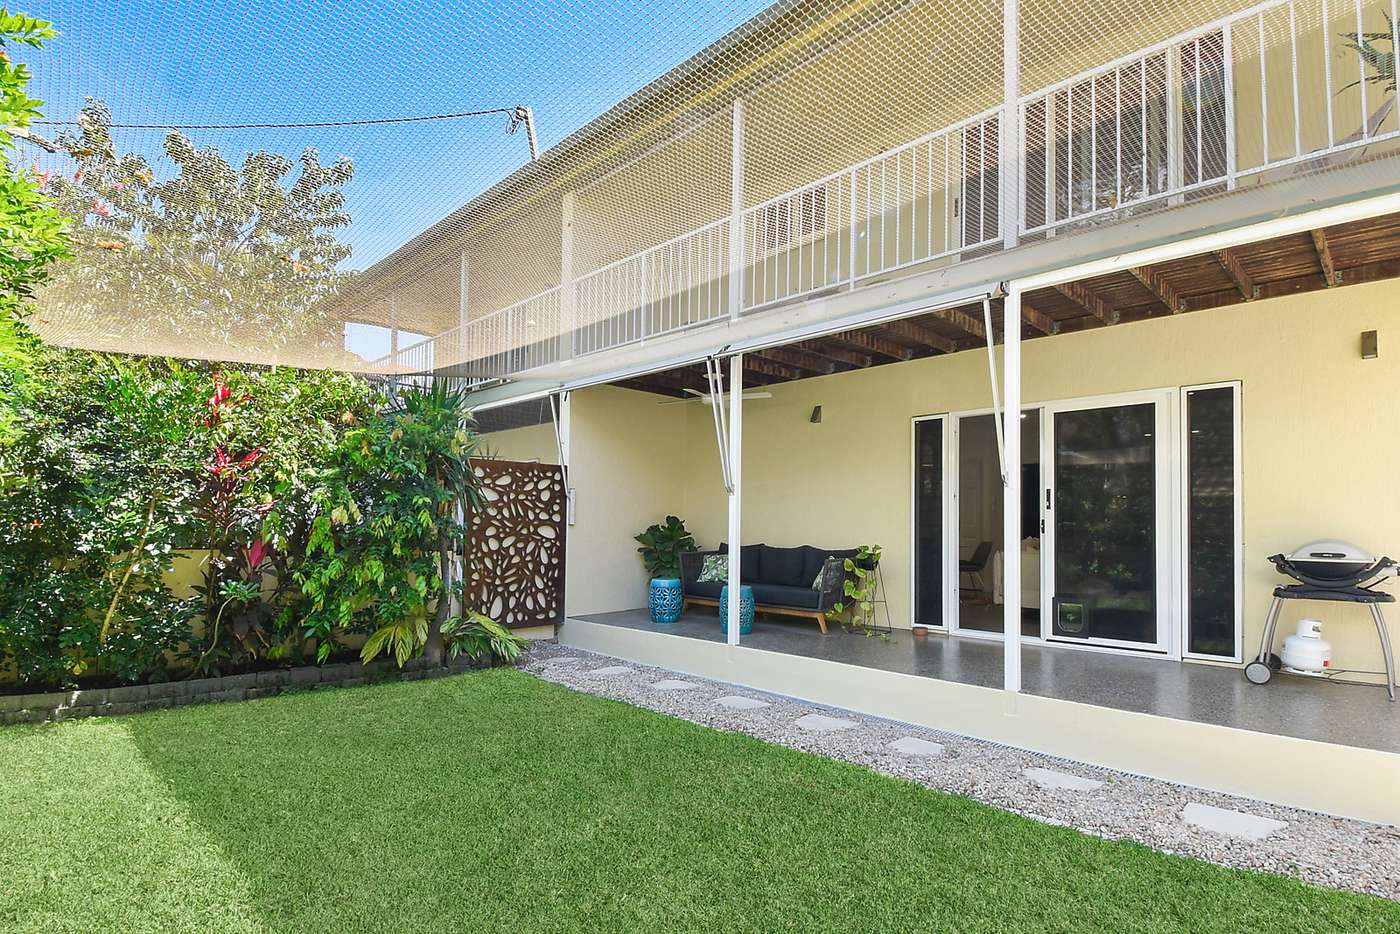 Main view of Homely unit listing, 2/56 Alexandra Street, North Ward QLD 4810